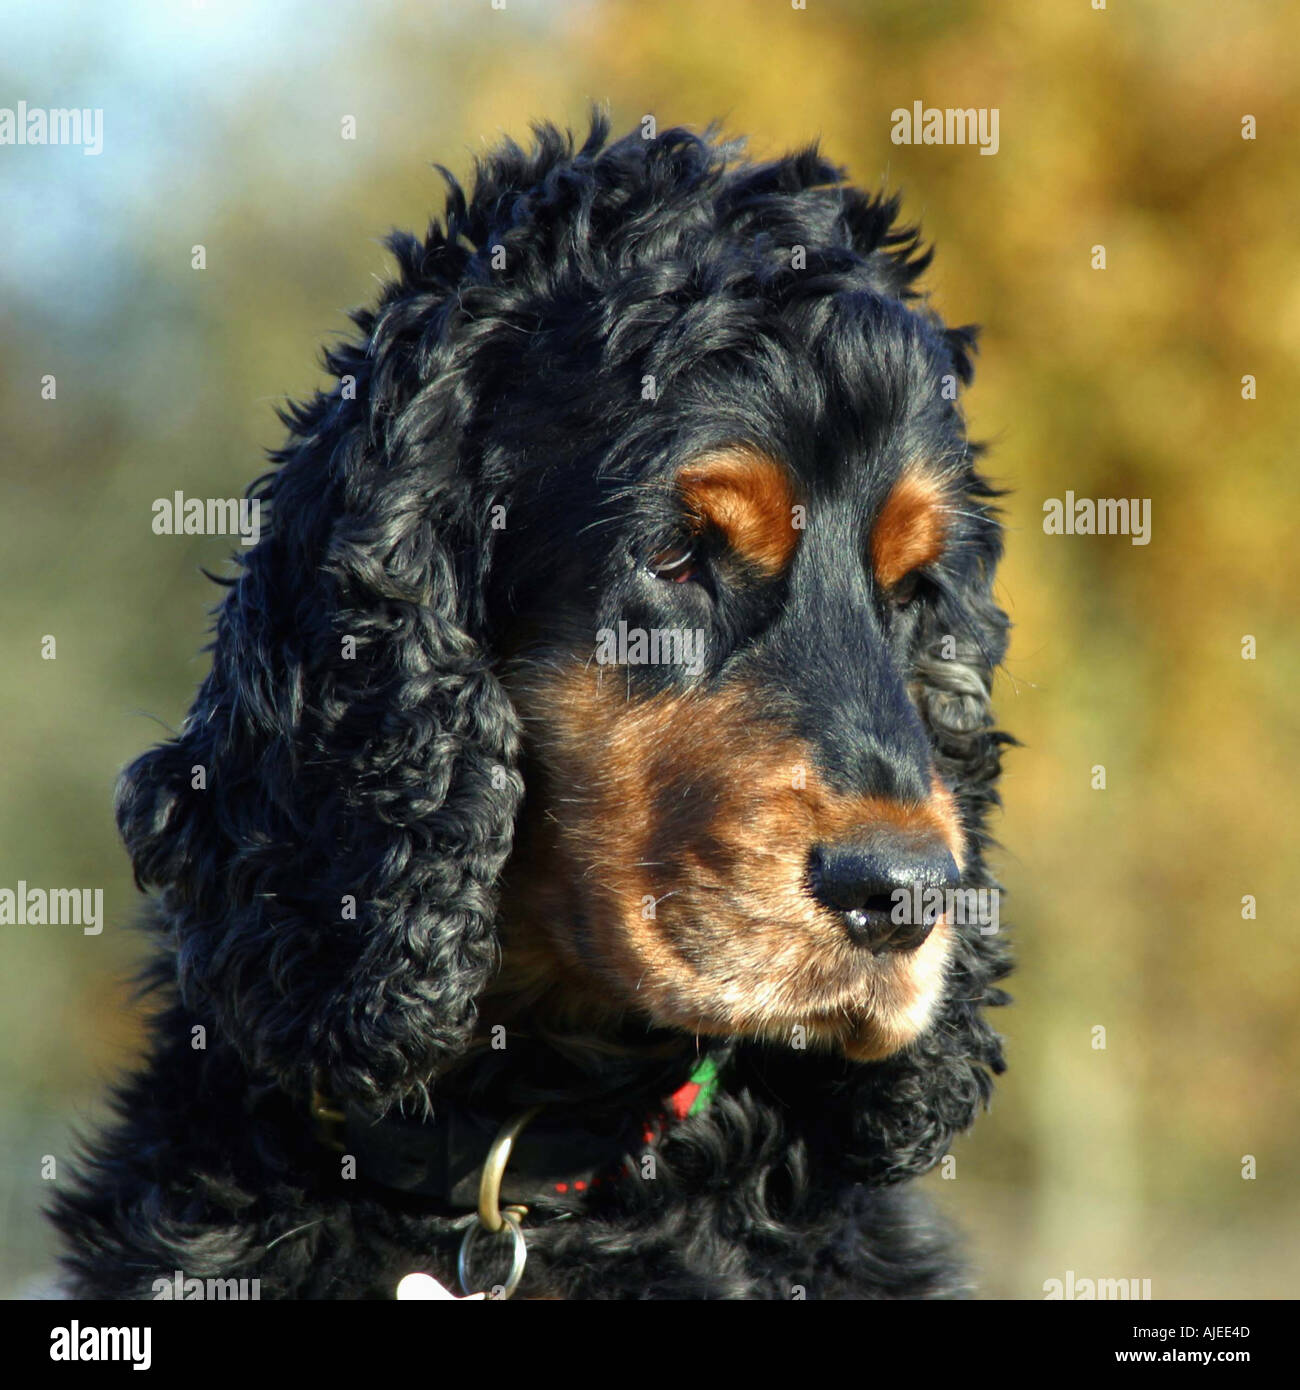 Cocker spaniel - Stock Image